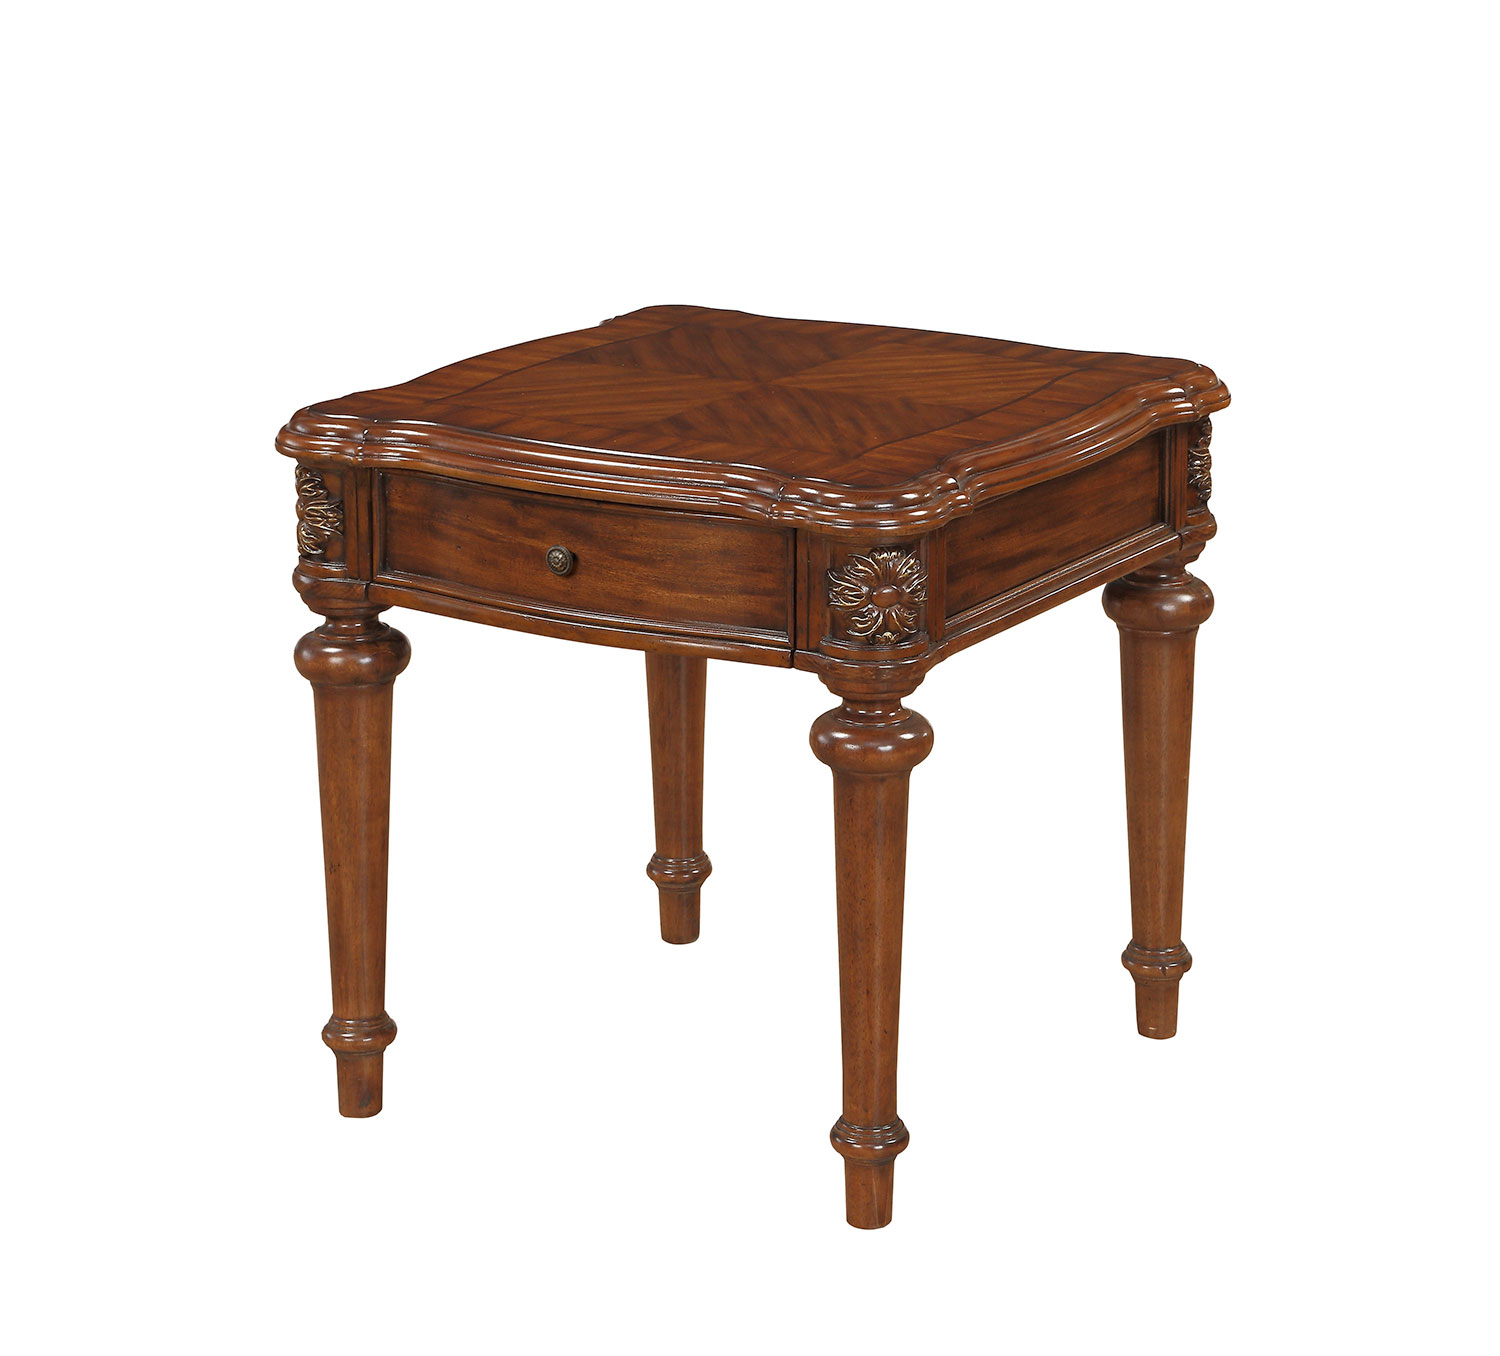 Homelegance Barbary End Table with Functional Drawer - Cherry